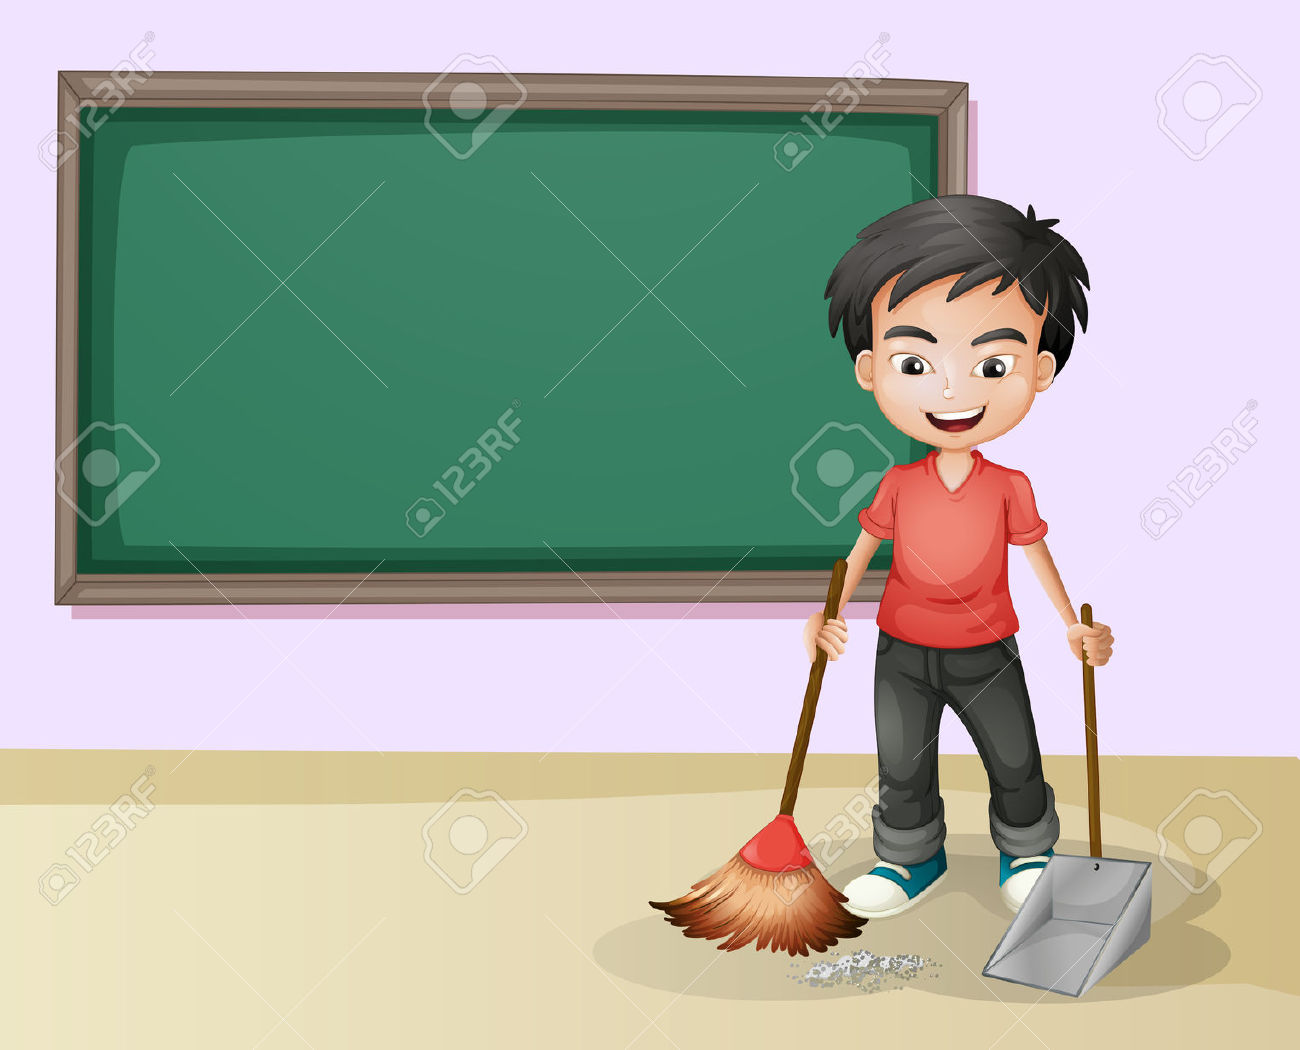 boy cleaning clipart 20 free Cliparts | Download images on ...